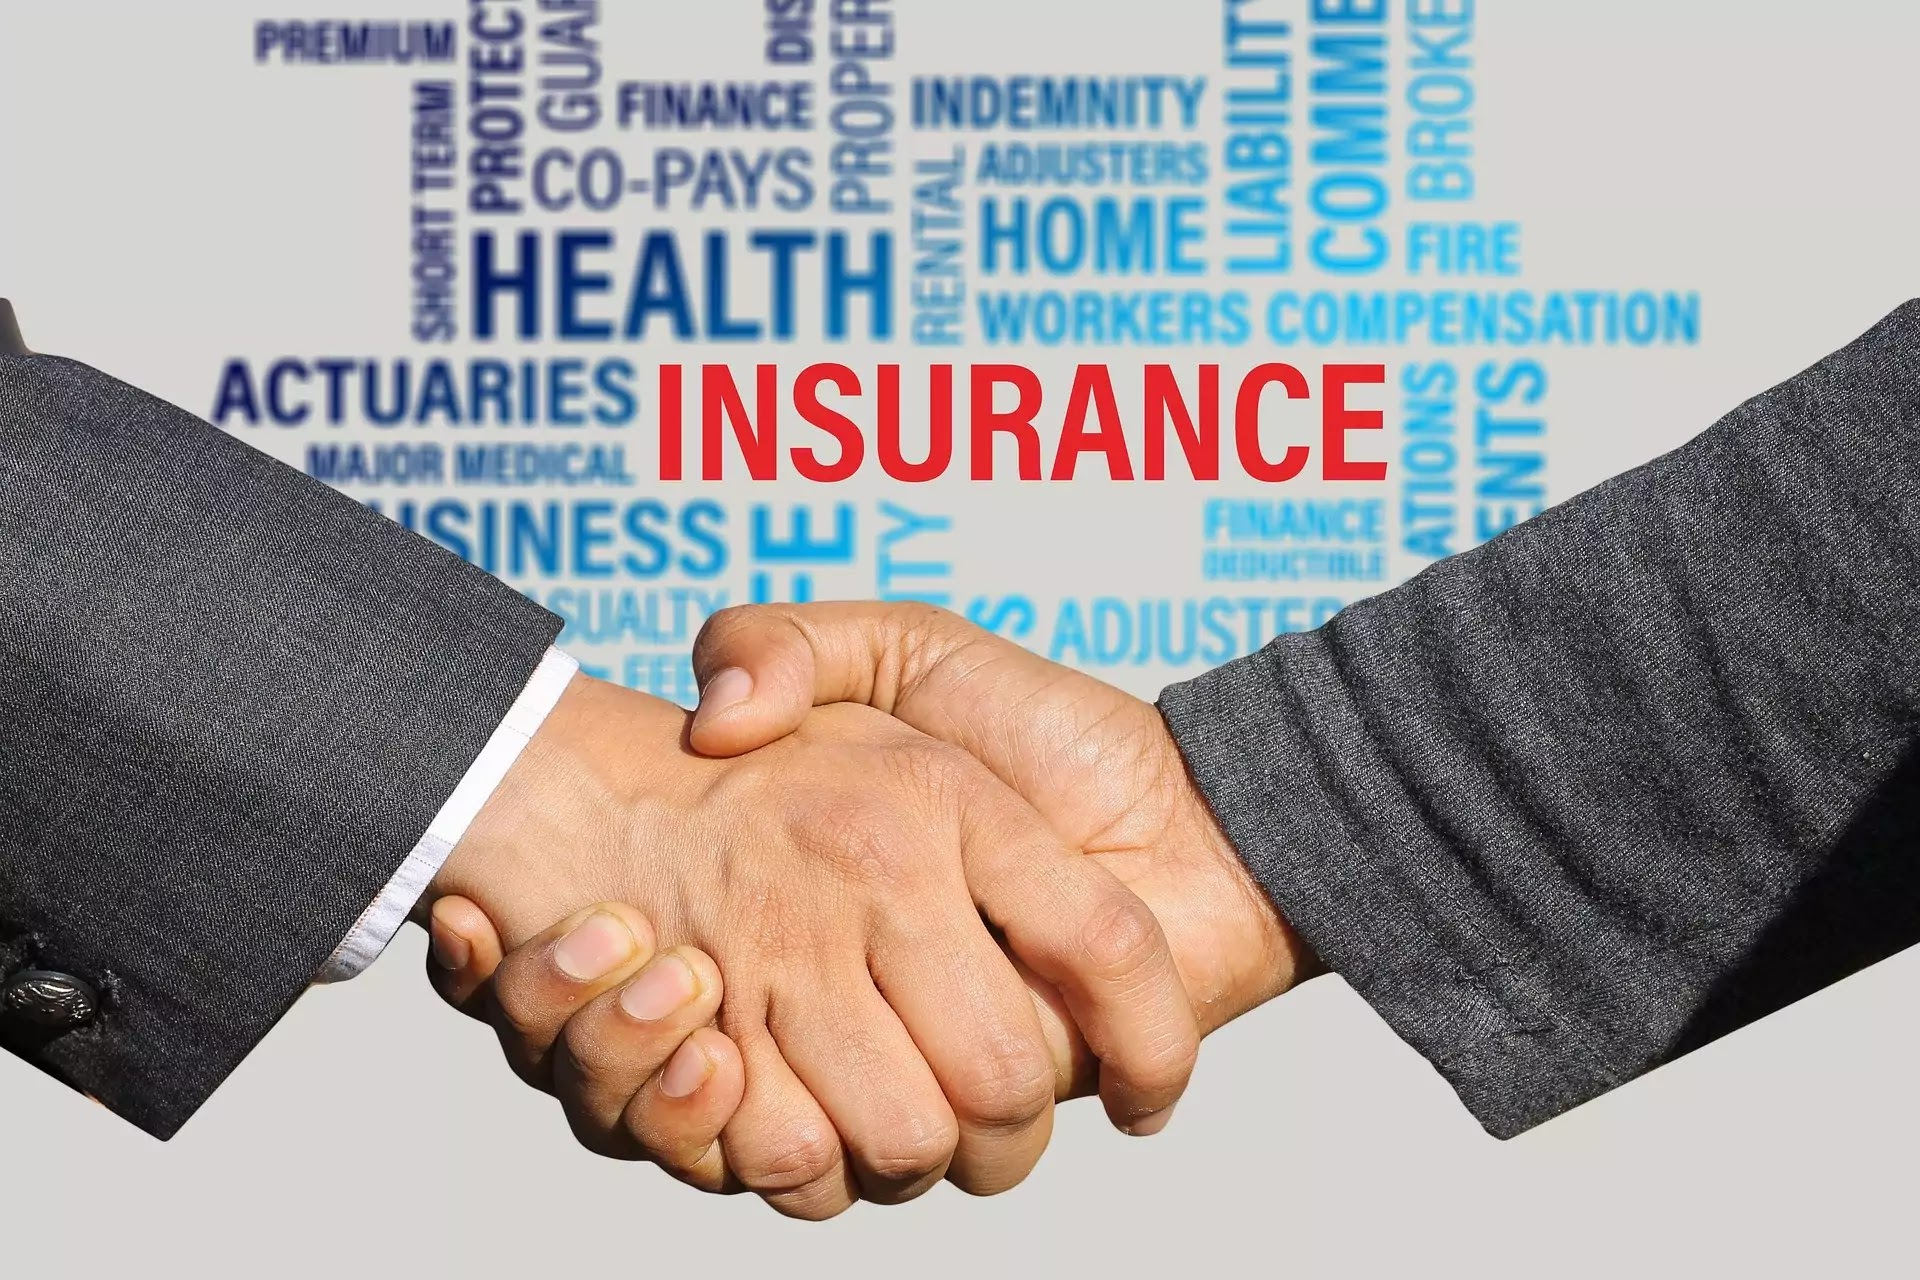 policy, insurance companies, general insurance, car insurance policy, travel insurance, car quotes, term life insurance, best health insurance, car insurance prices, third party car insurance, vehicle insurance online, health insurance policies, car insurance calculator,motor insurance,